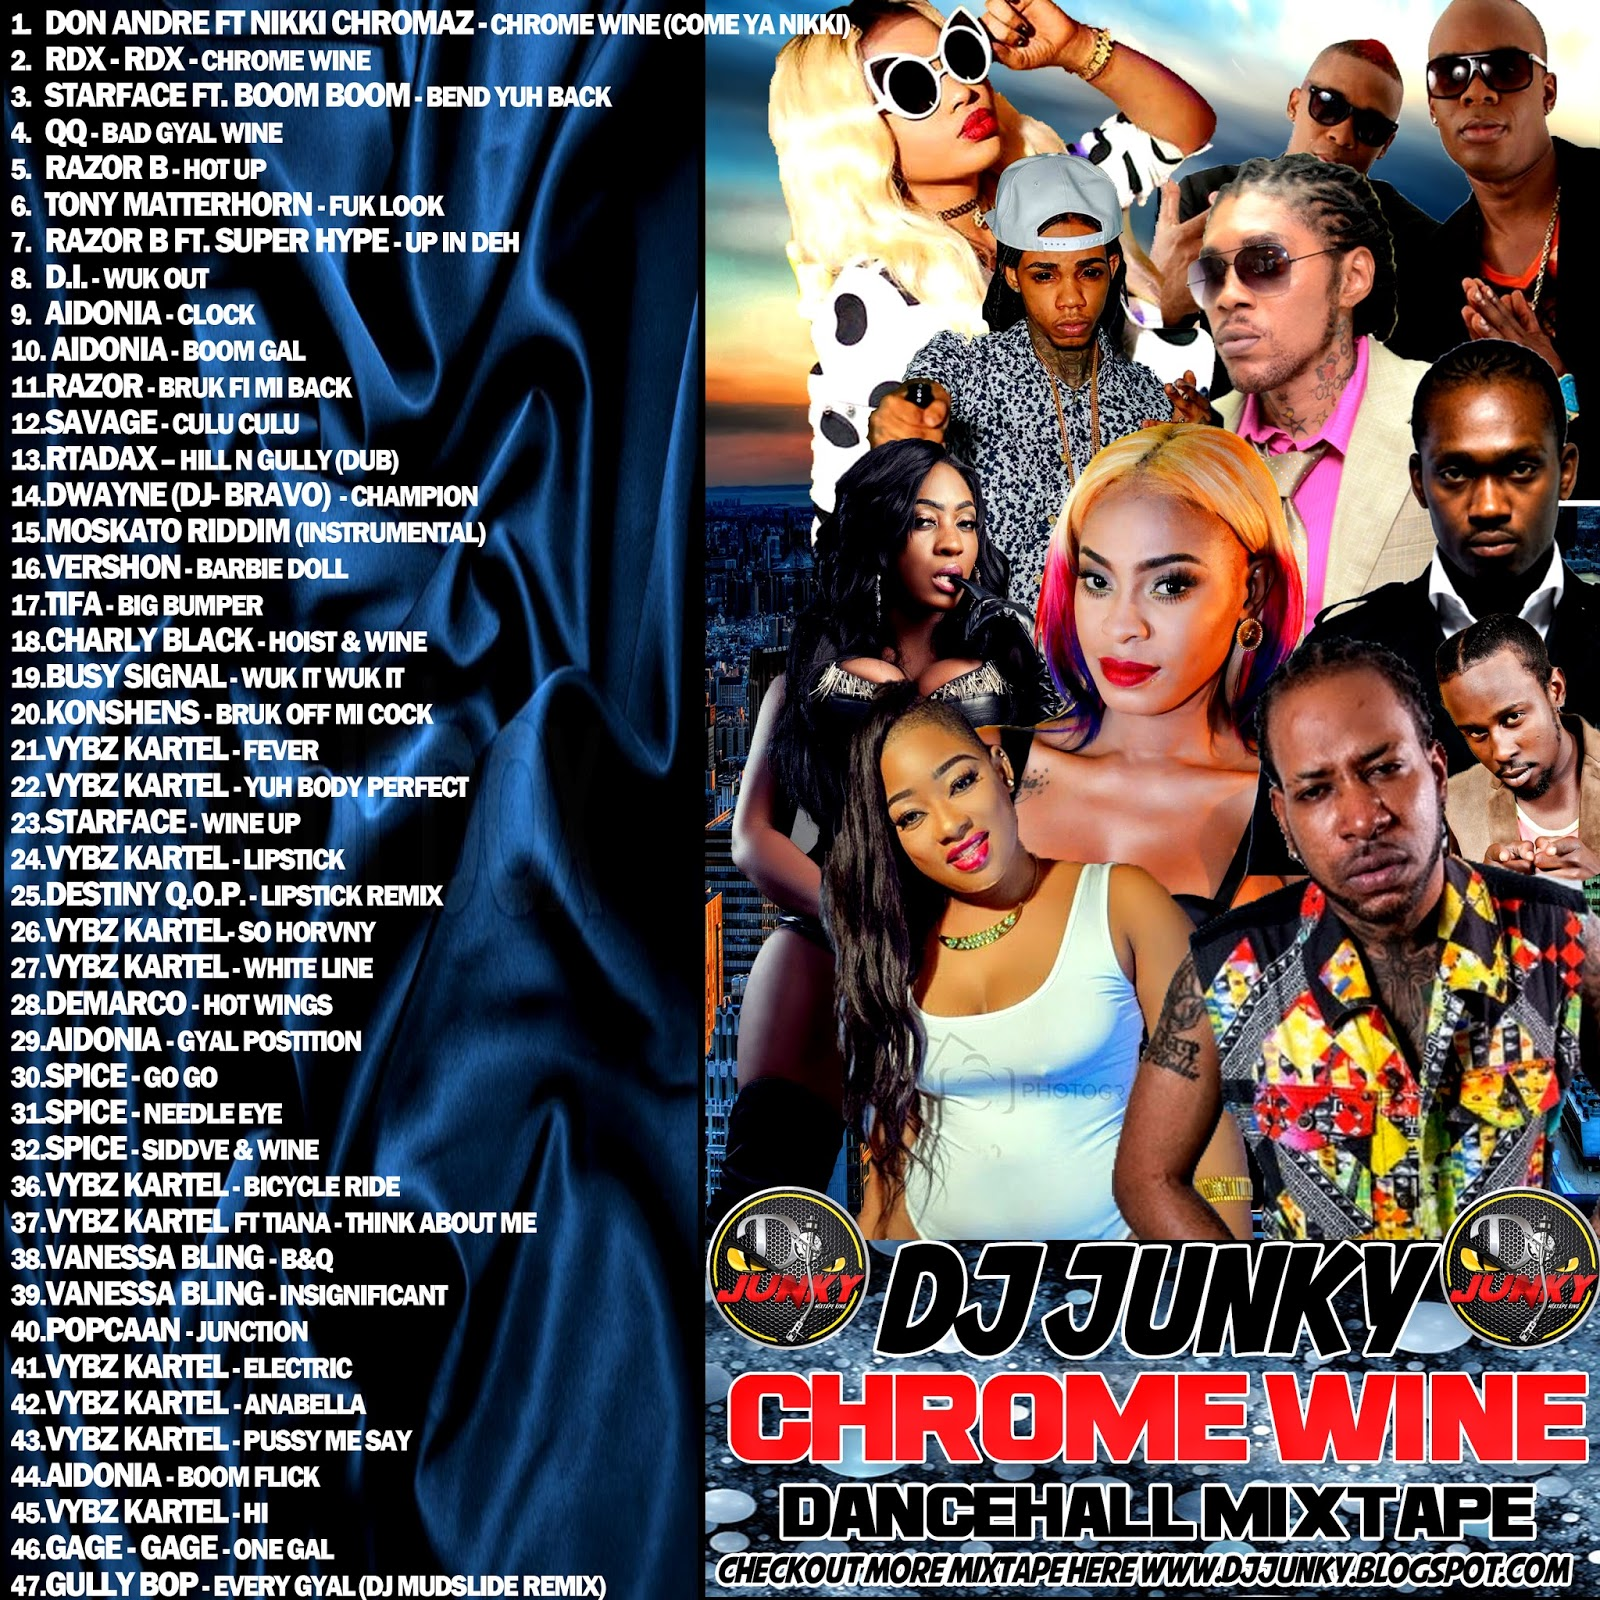 DJJUNKY - CHROME WINE DANCEHALL MIXTAPE 2K16 : FREE DOWNLOAD : - DJ